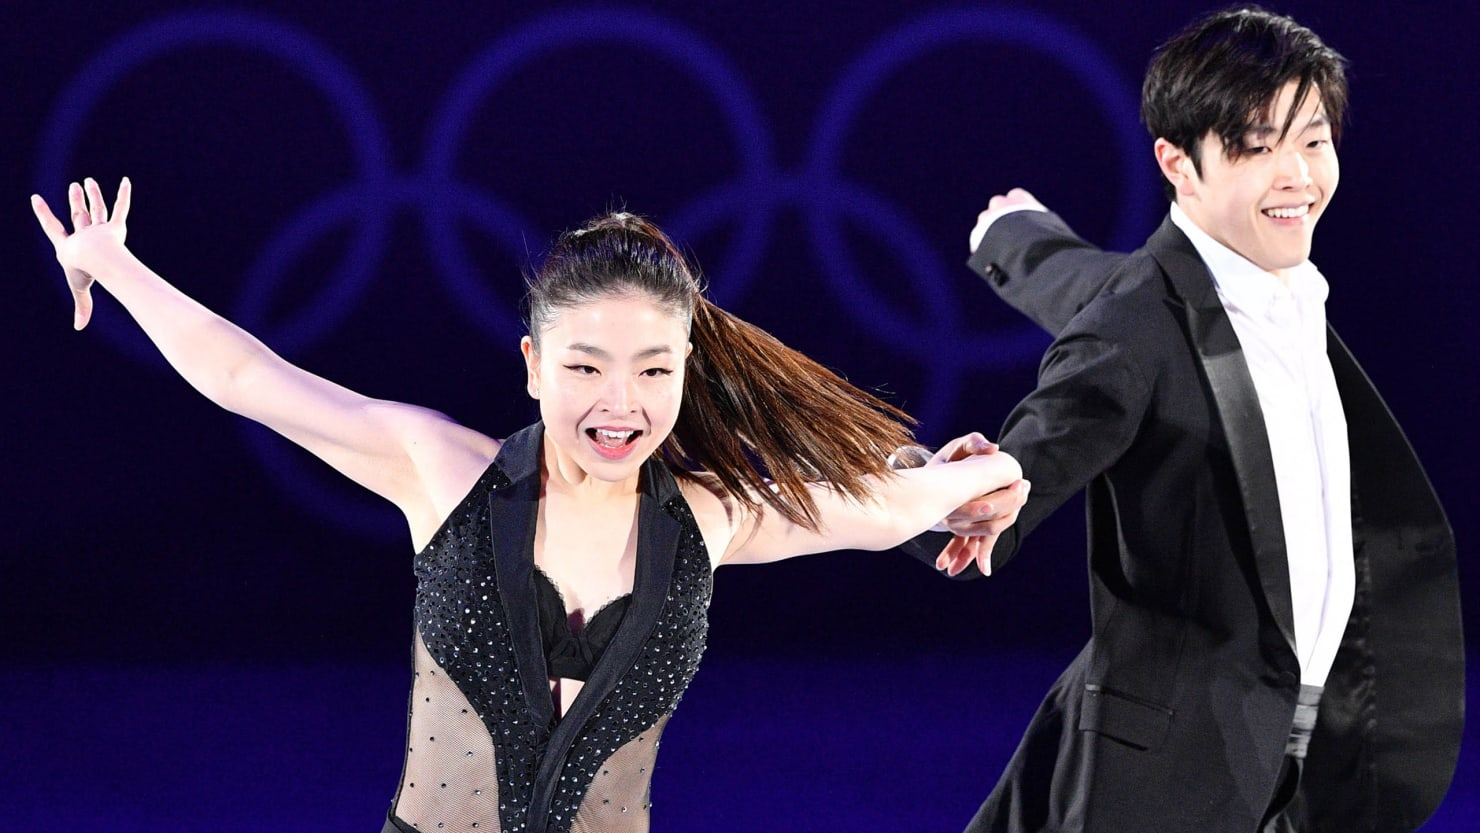 alex maia shibutani 2018 winter olympics shib sibs tessa virtue scott moir ice dancing siblings